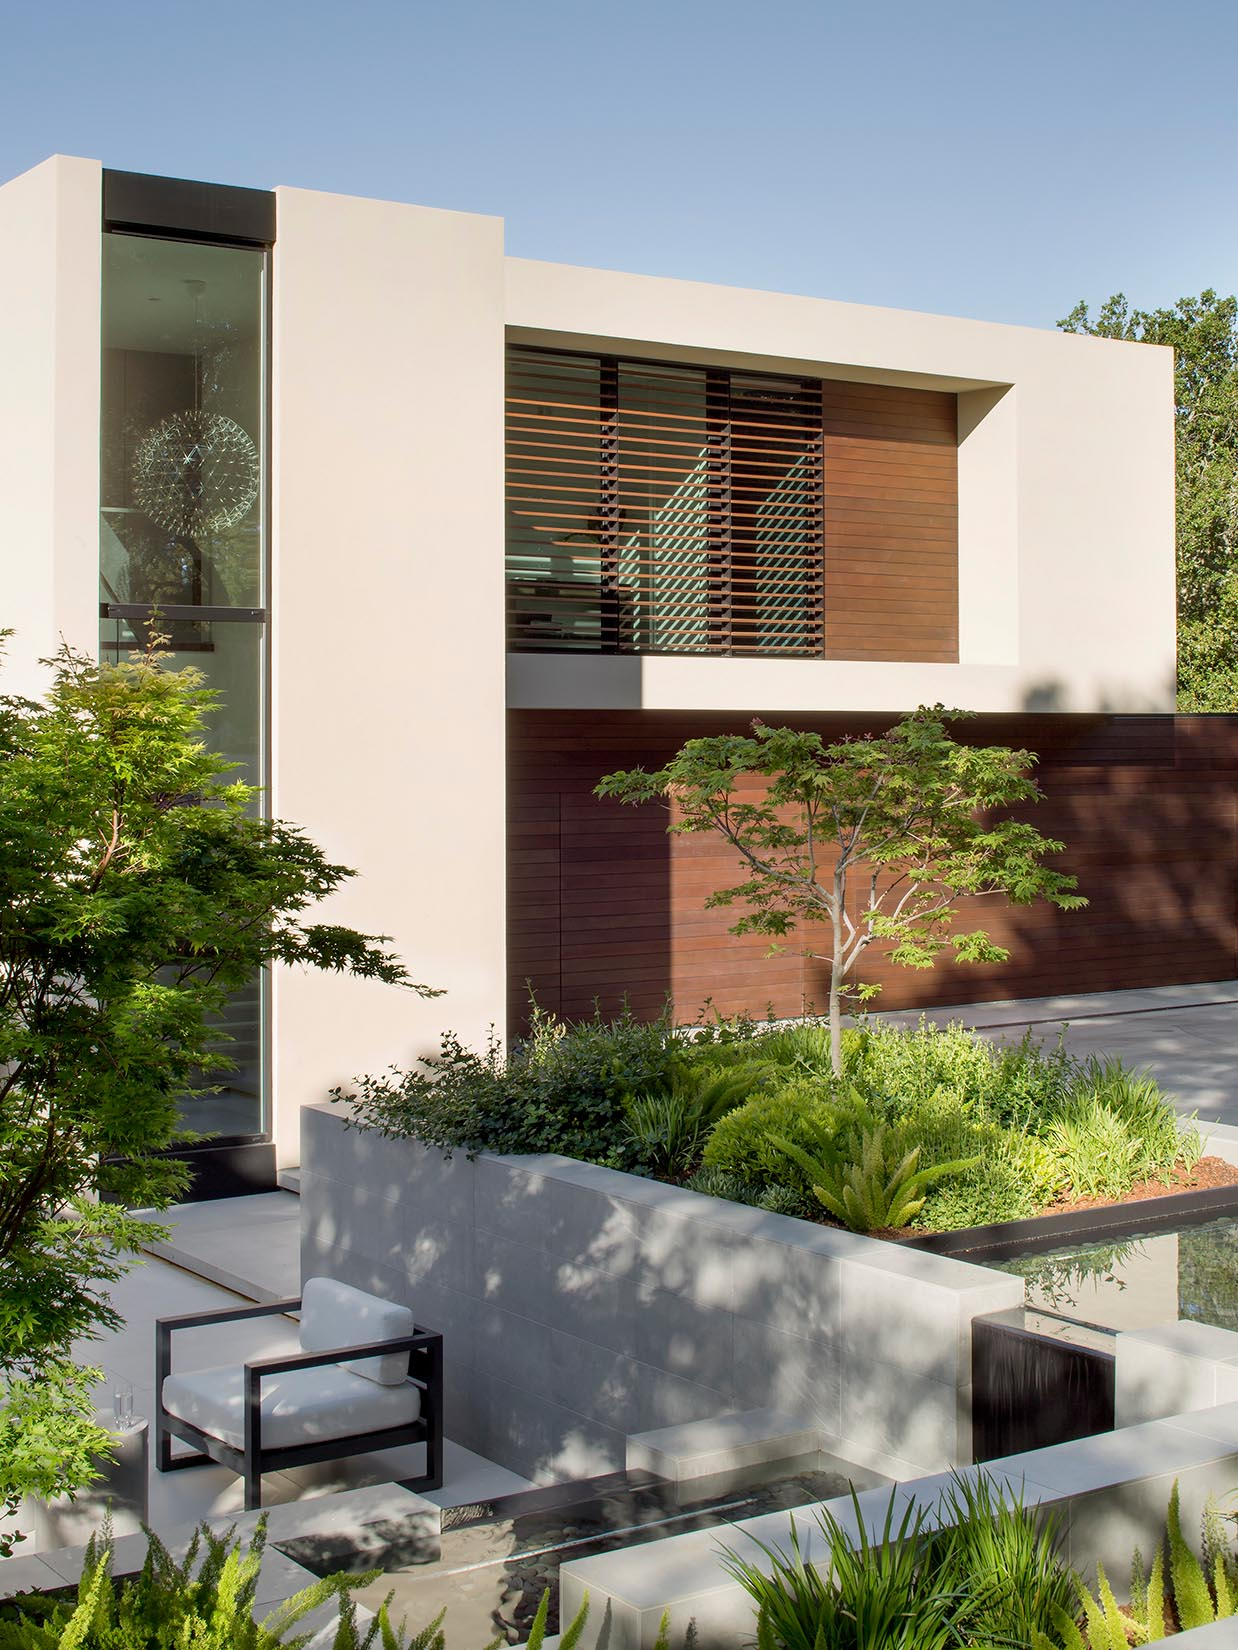 Much of the landscape around this modern house has been left to its natural state, however some areas have been updated to include water features, retaining walls, pathways, and small sitting areas.